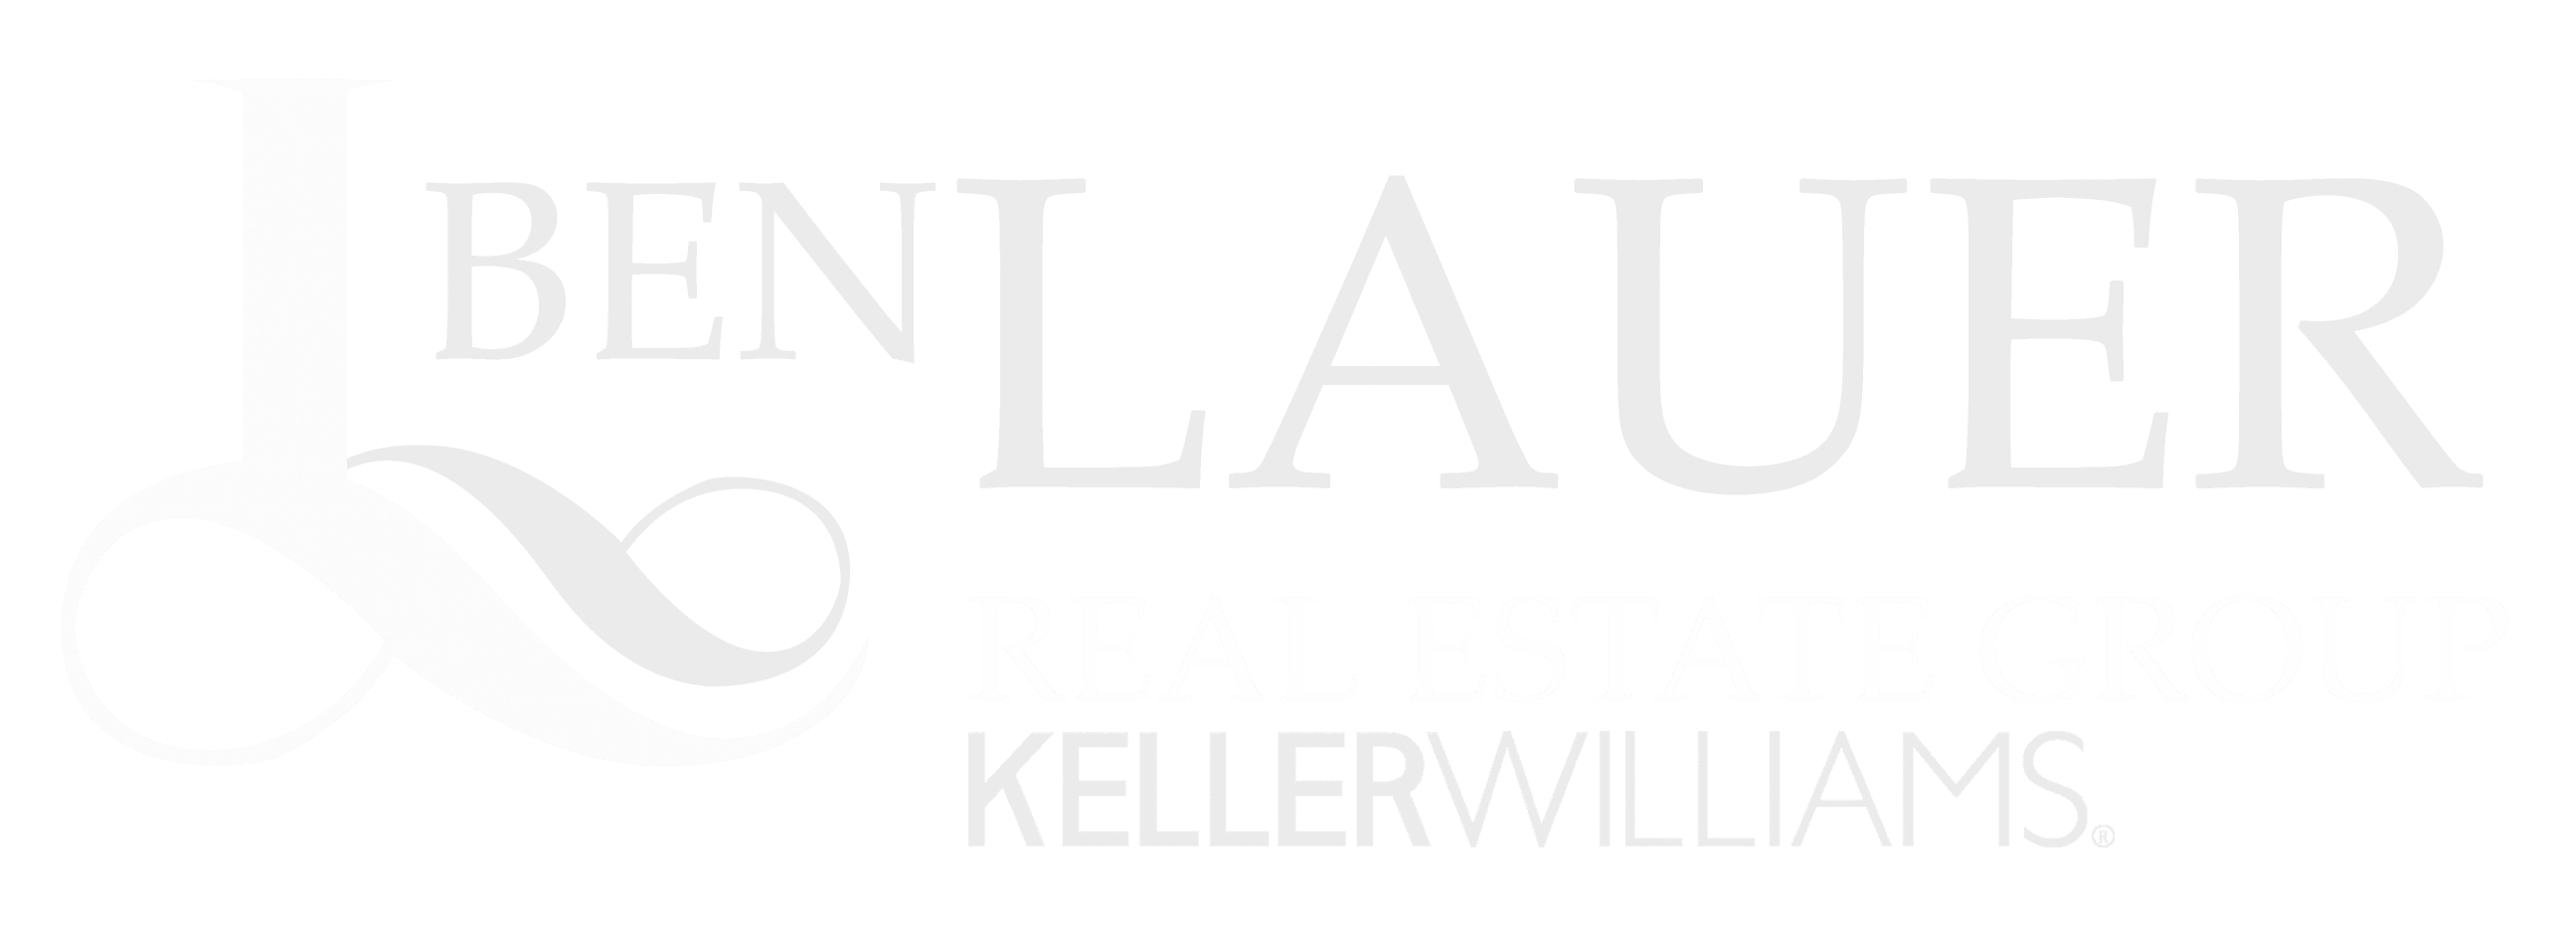 Ben Lauer Real Estate Group